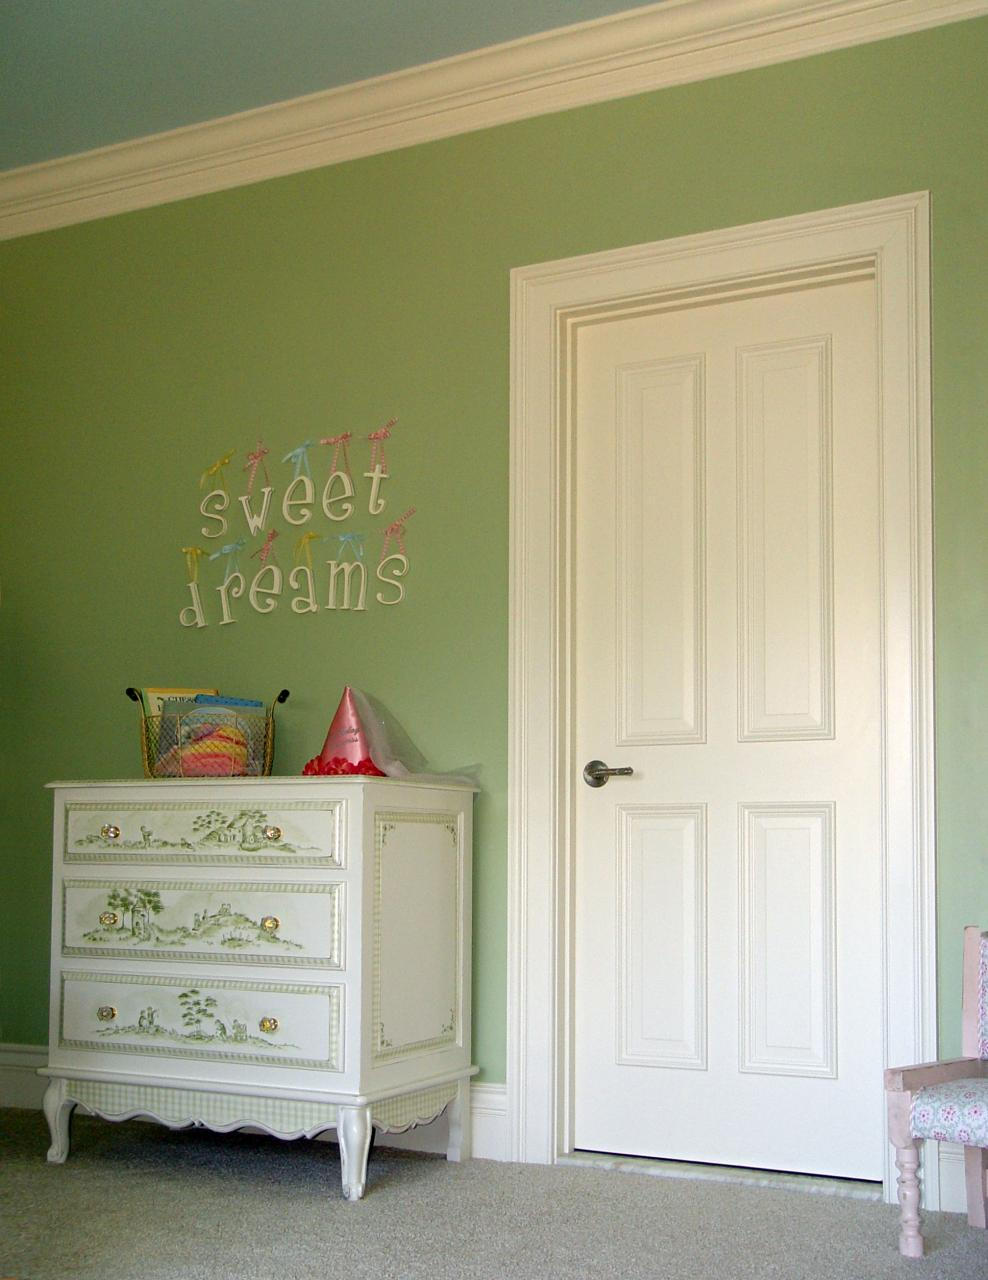 Trustile Paint Grade Mdf Interior Doors In Chicago At. Graber Vs Hunter Douglas. Magnetic Paint Reviews. Children's Shoe Organizer. Foundation Of A House. Bamboo Tile. Cabinet Wine Rack. Expensive Chairs. Butcher Block Countertop Pros And Cons